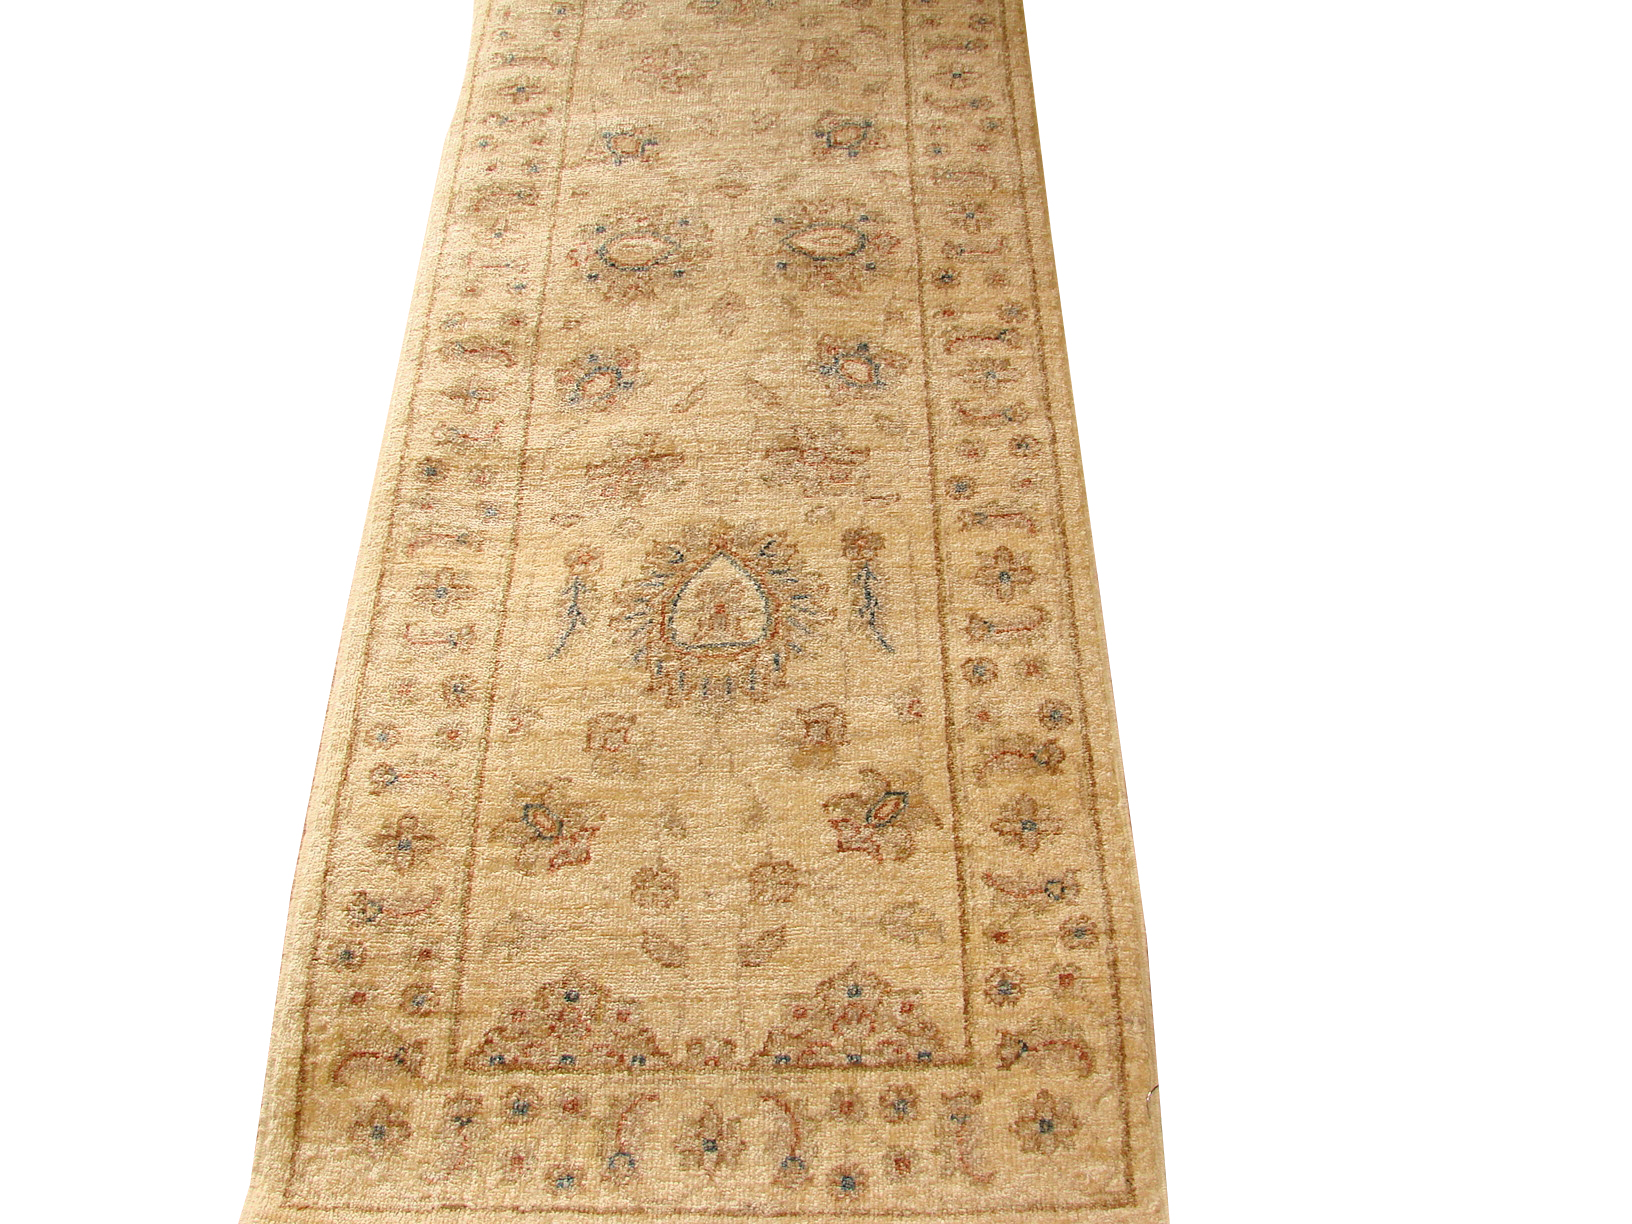 6 ft. Runner Peshawar Hand Knotted Wool Area Rug - MR013384